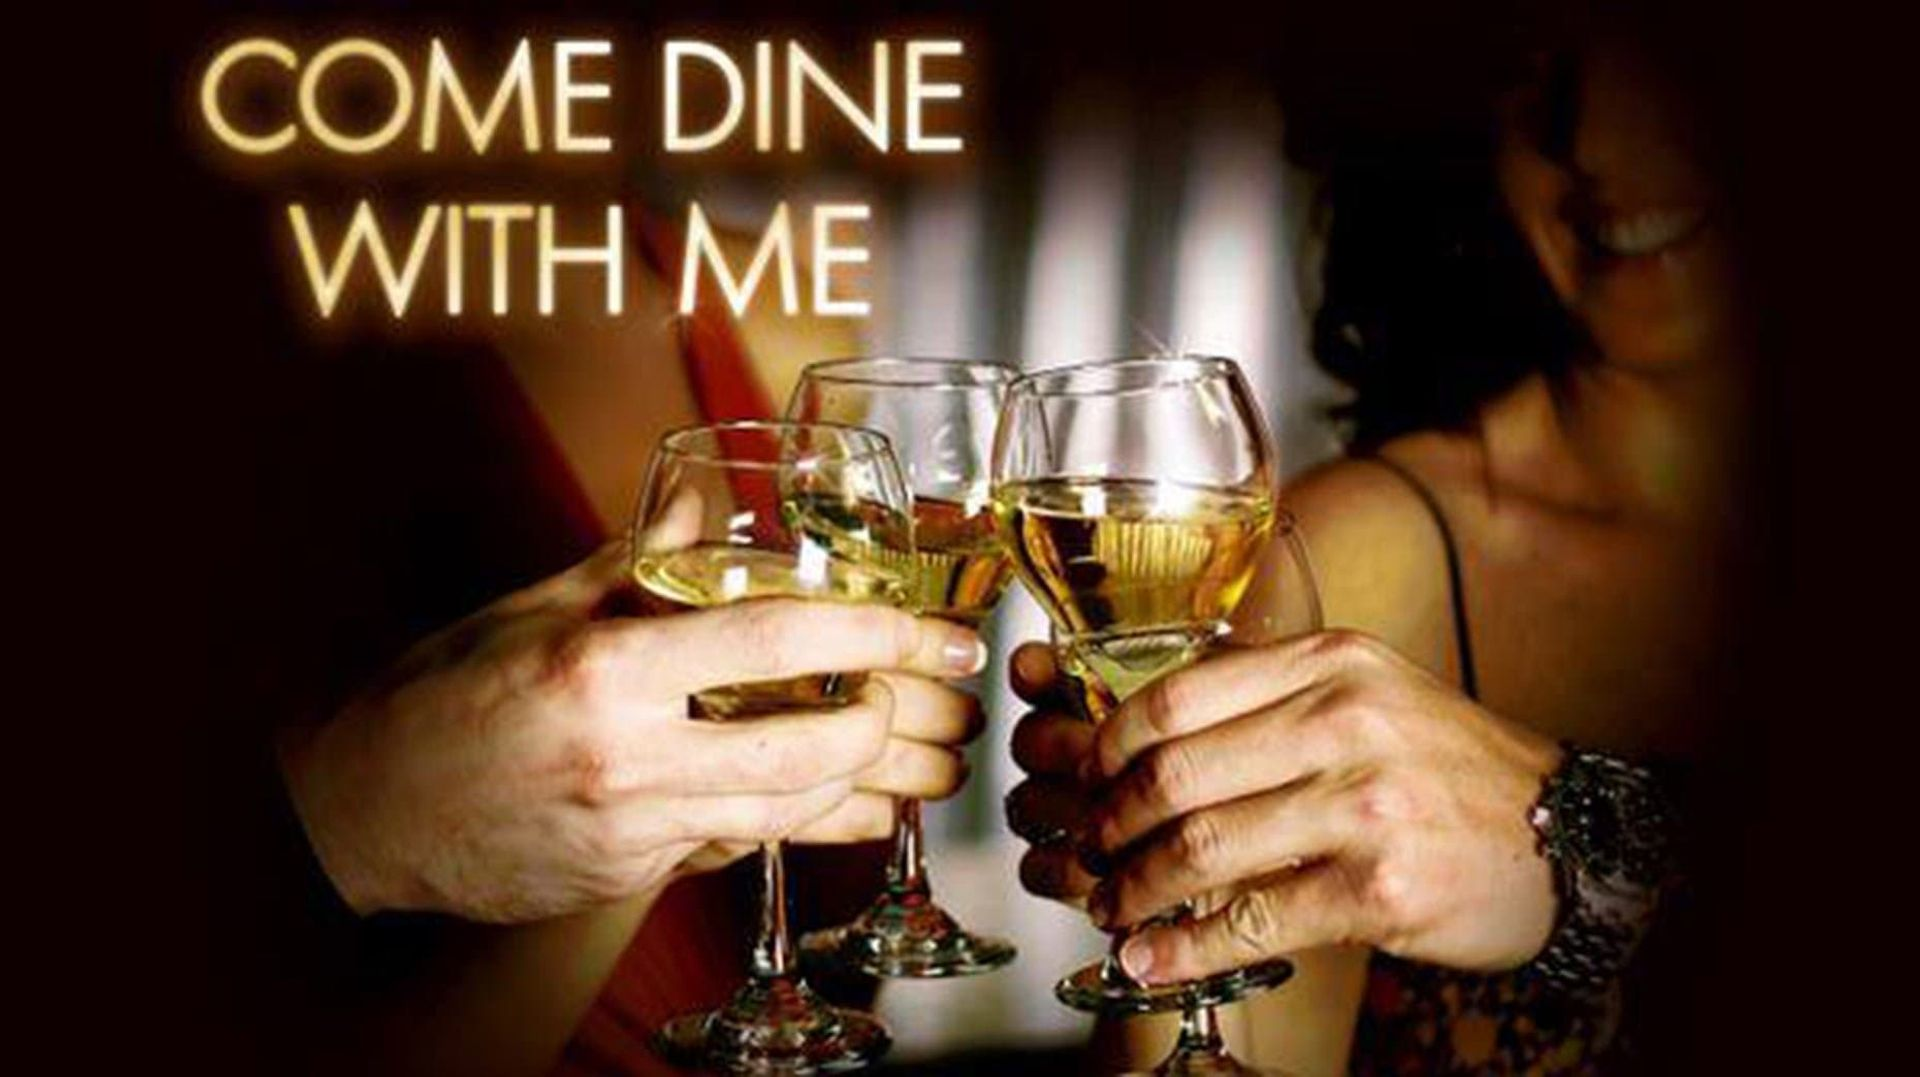 Come Dine with Me Season 20 Where To Watch Every Episode ...